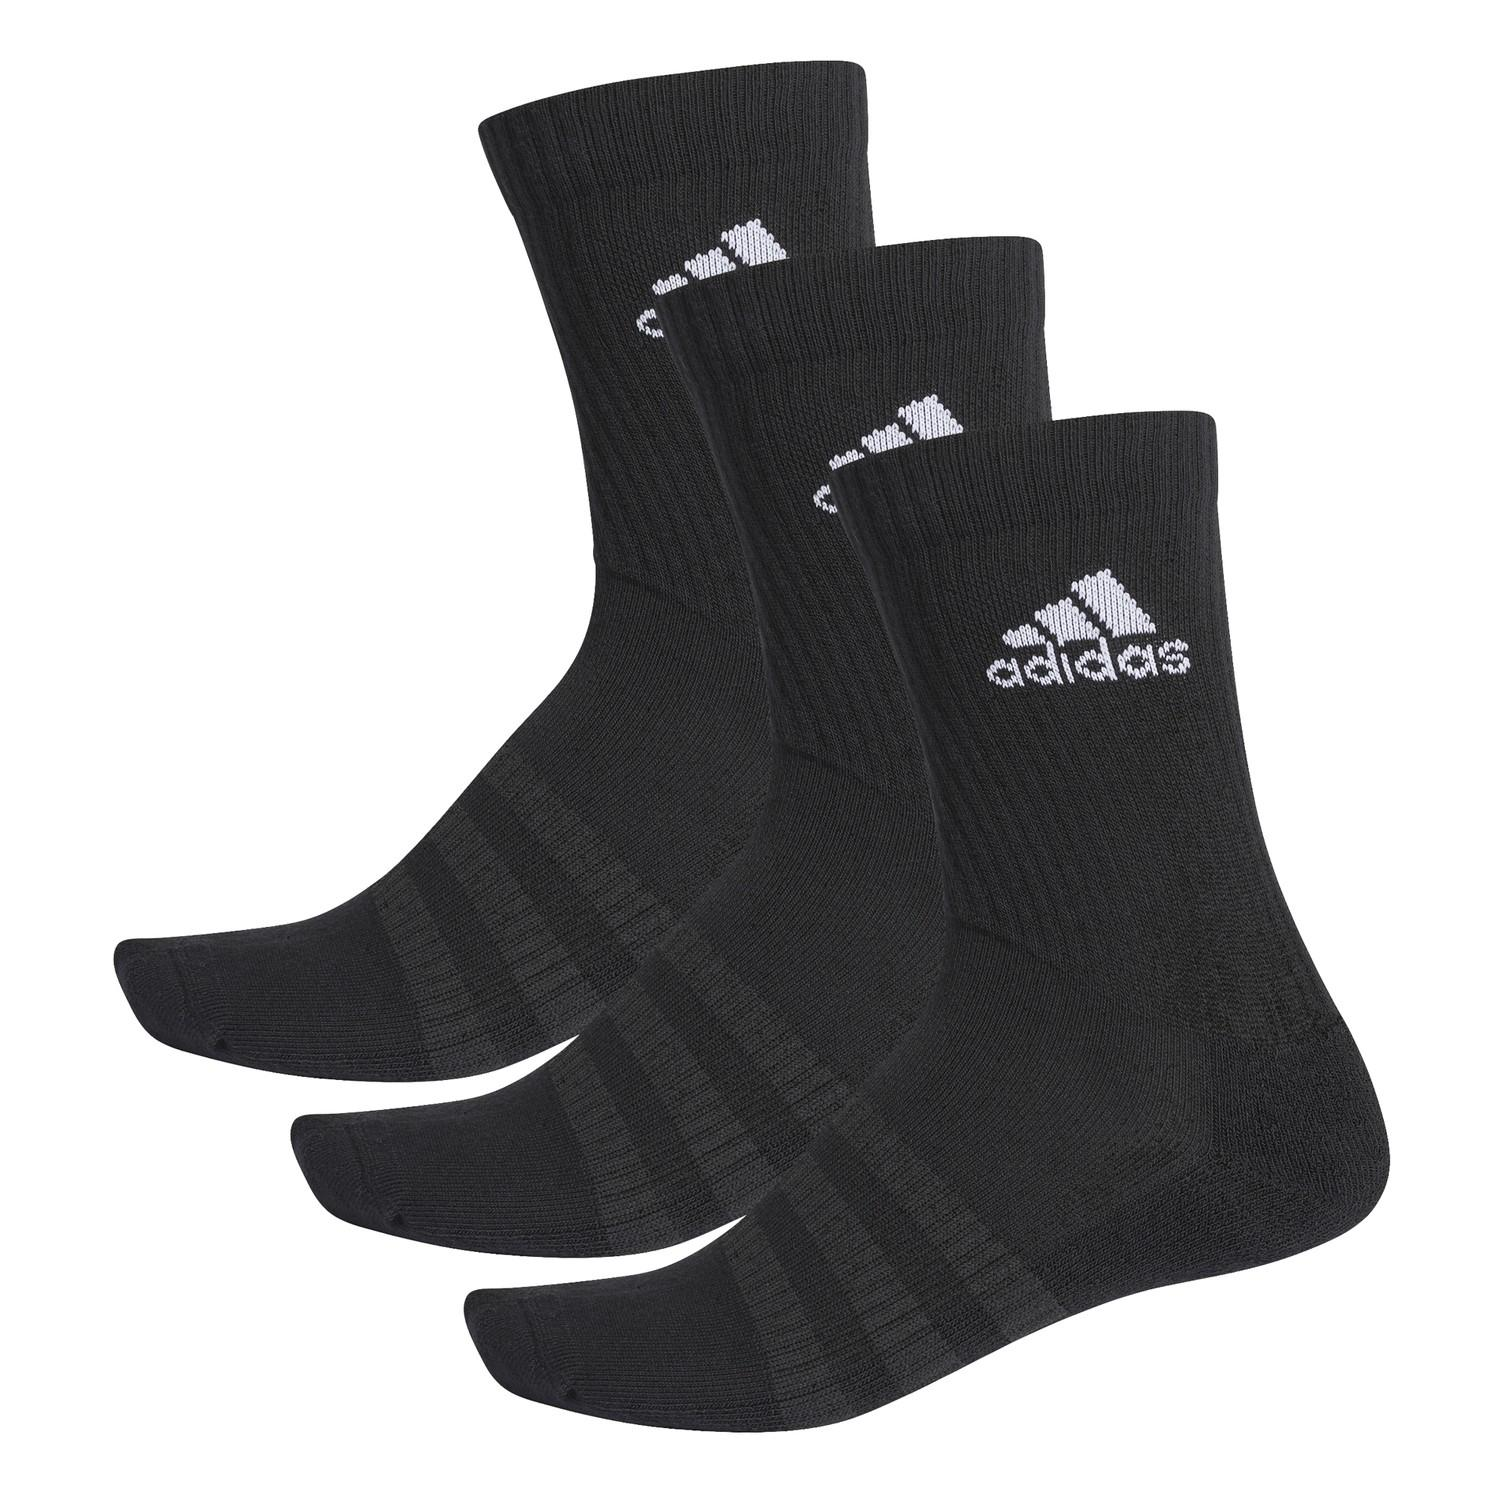 Calcetines Adidas tripack negros